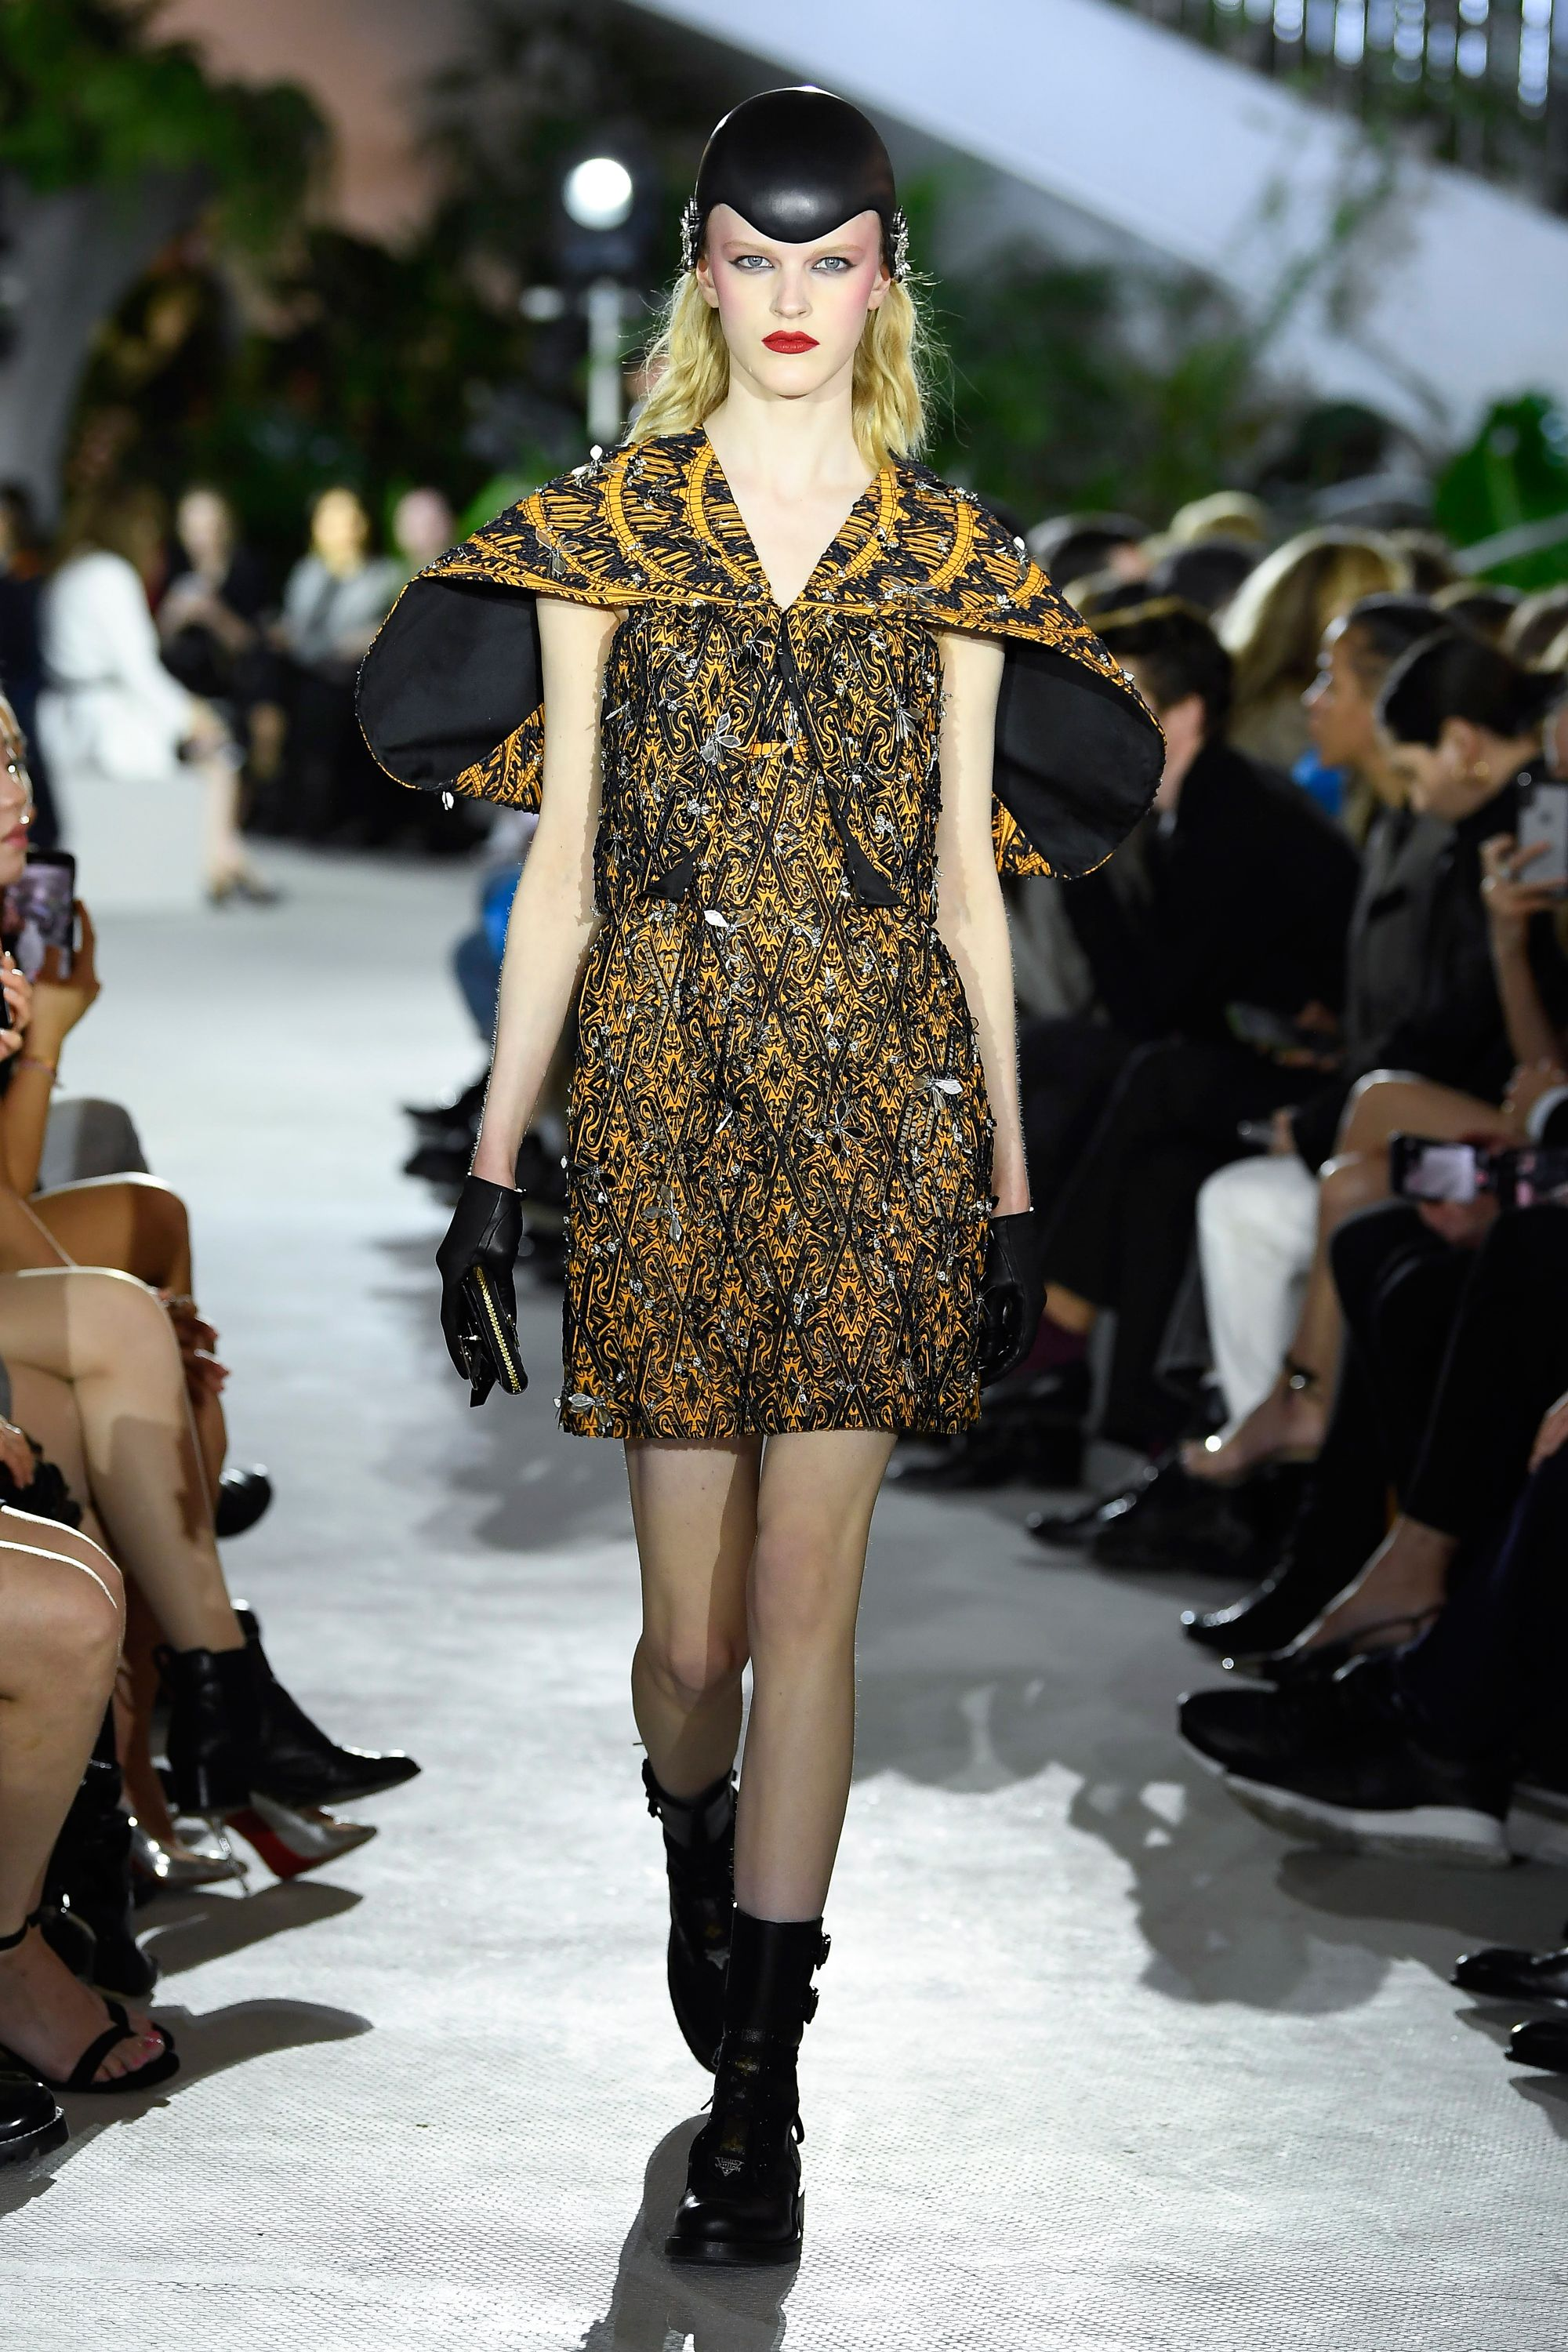 Aviator-style caps, dramatic shoulder pads, and elegant black gloves evoke travel, past and future at Nicolas Ghesquiere's 2020 Cruise Collection for Louis Vuitton.